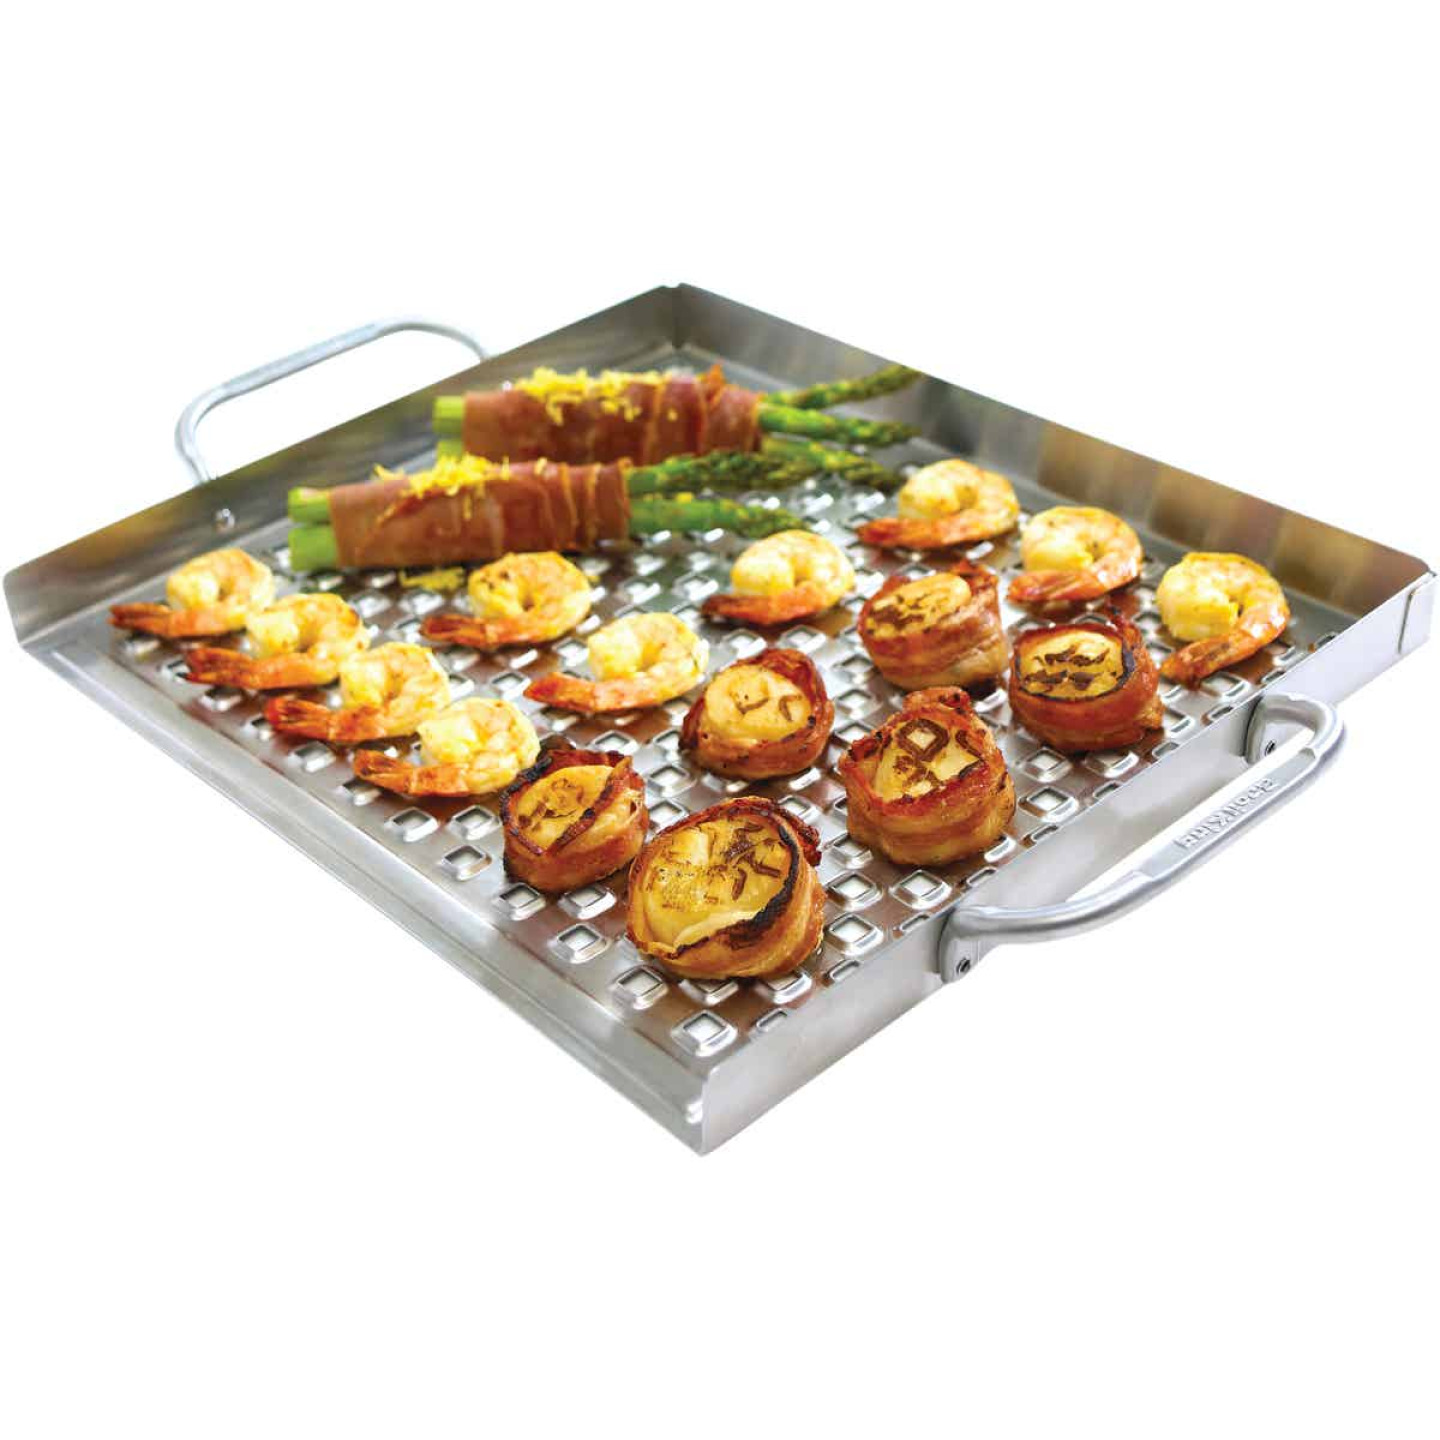 Broil King Imperial 15.5 In. W. x 13 In. L. Stainless Steel Flat Grill Topper Tray Image 4